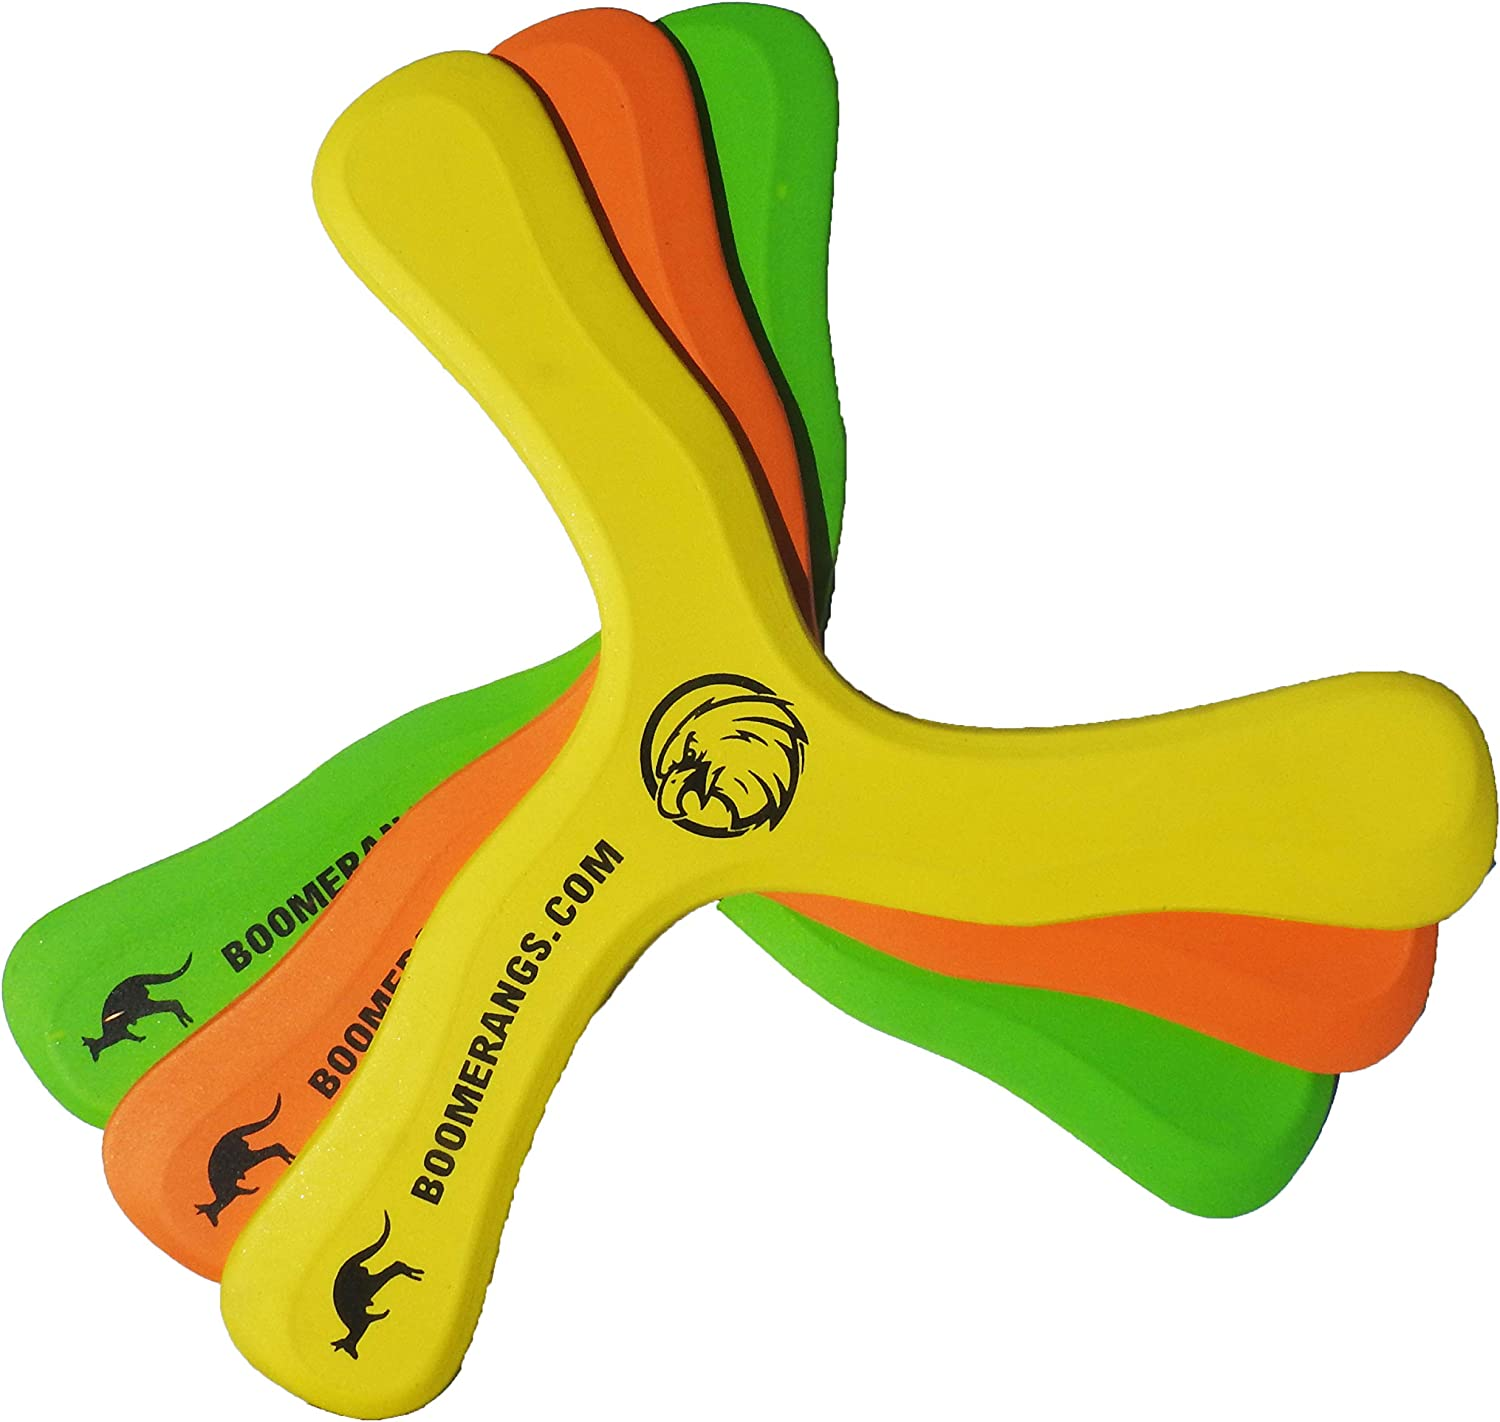 Baloo Boomerang 3 Pack - Easy, Safe Boomerangs for Kids as Young